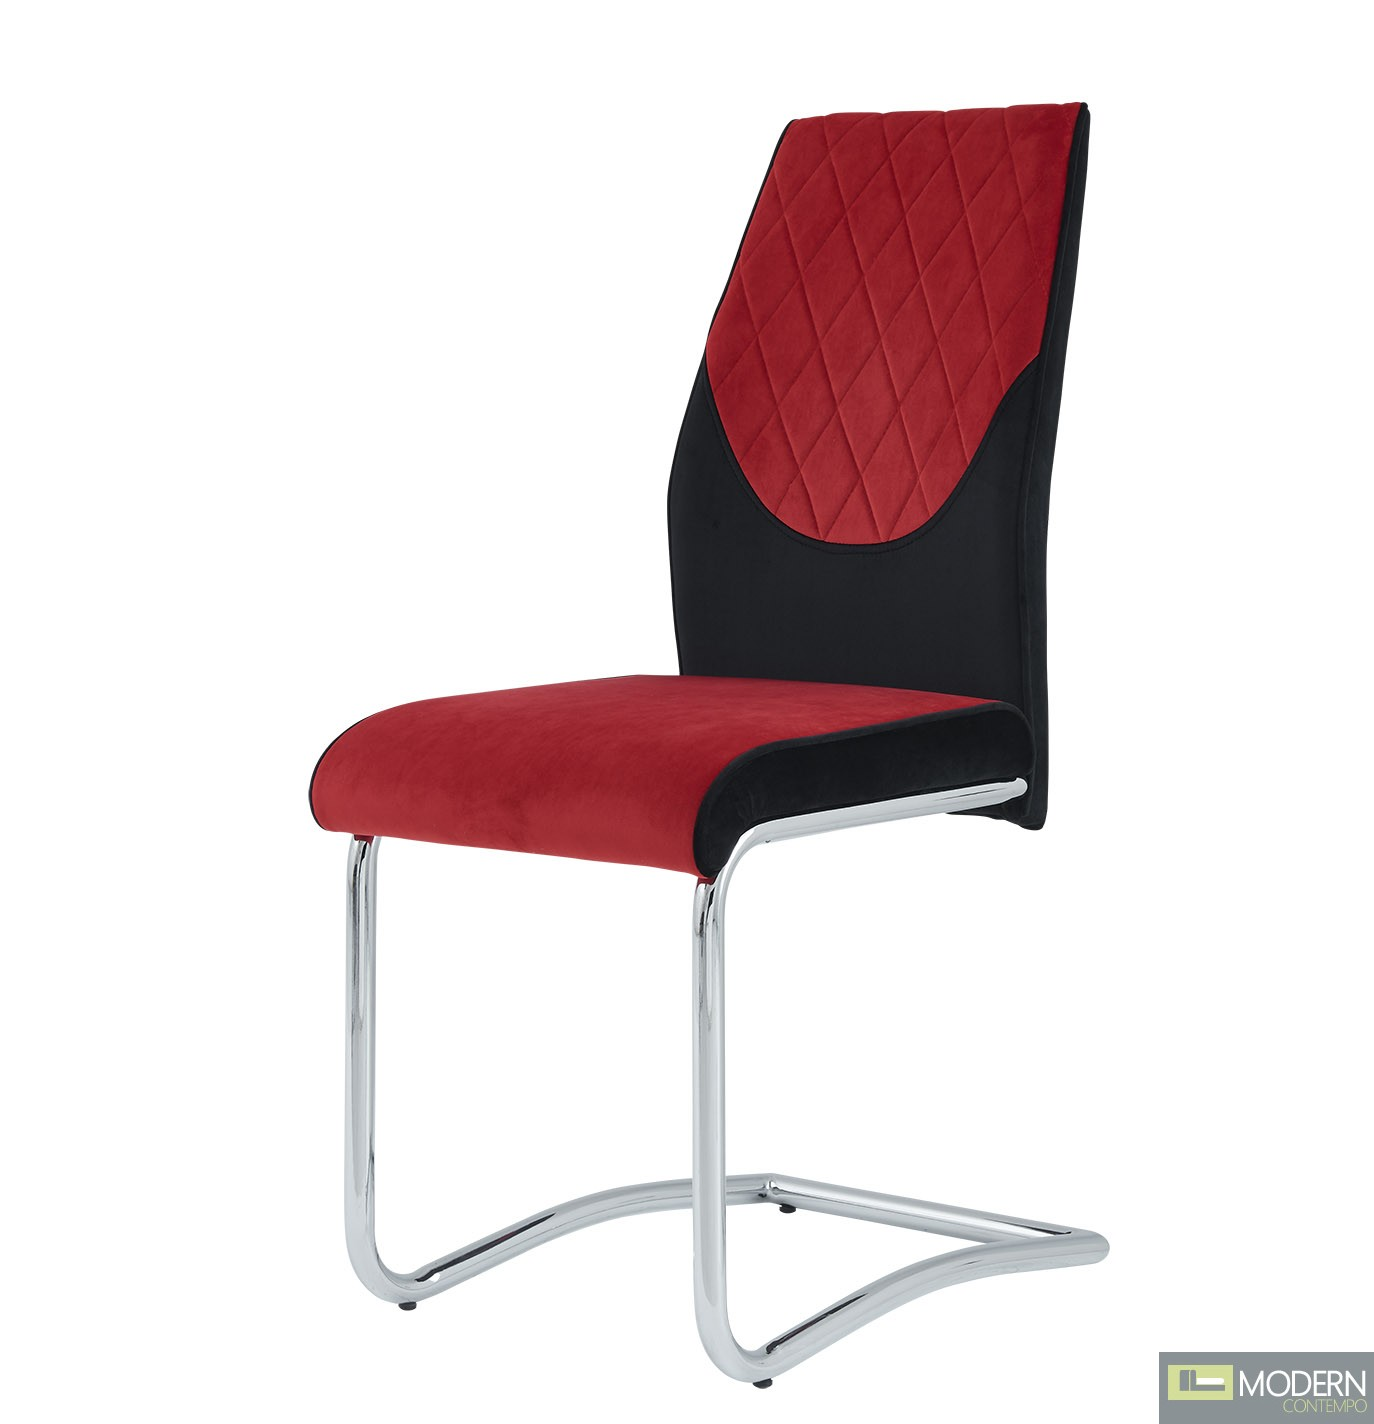 Set of 4 Red and Black Velvet Dining Chairs